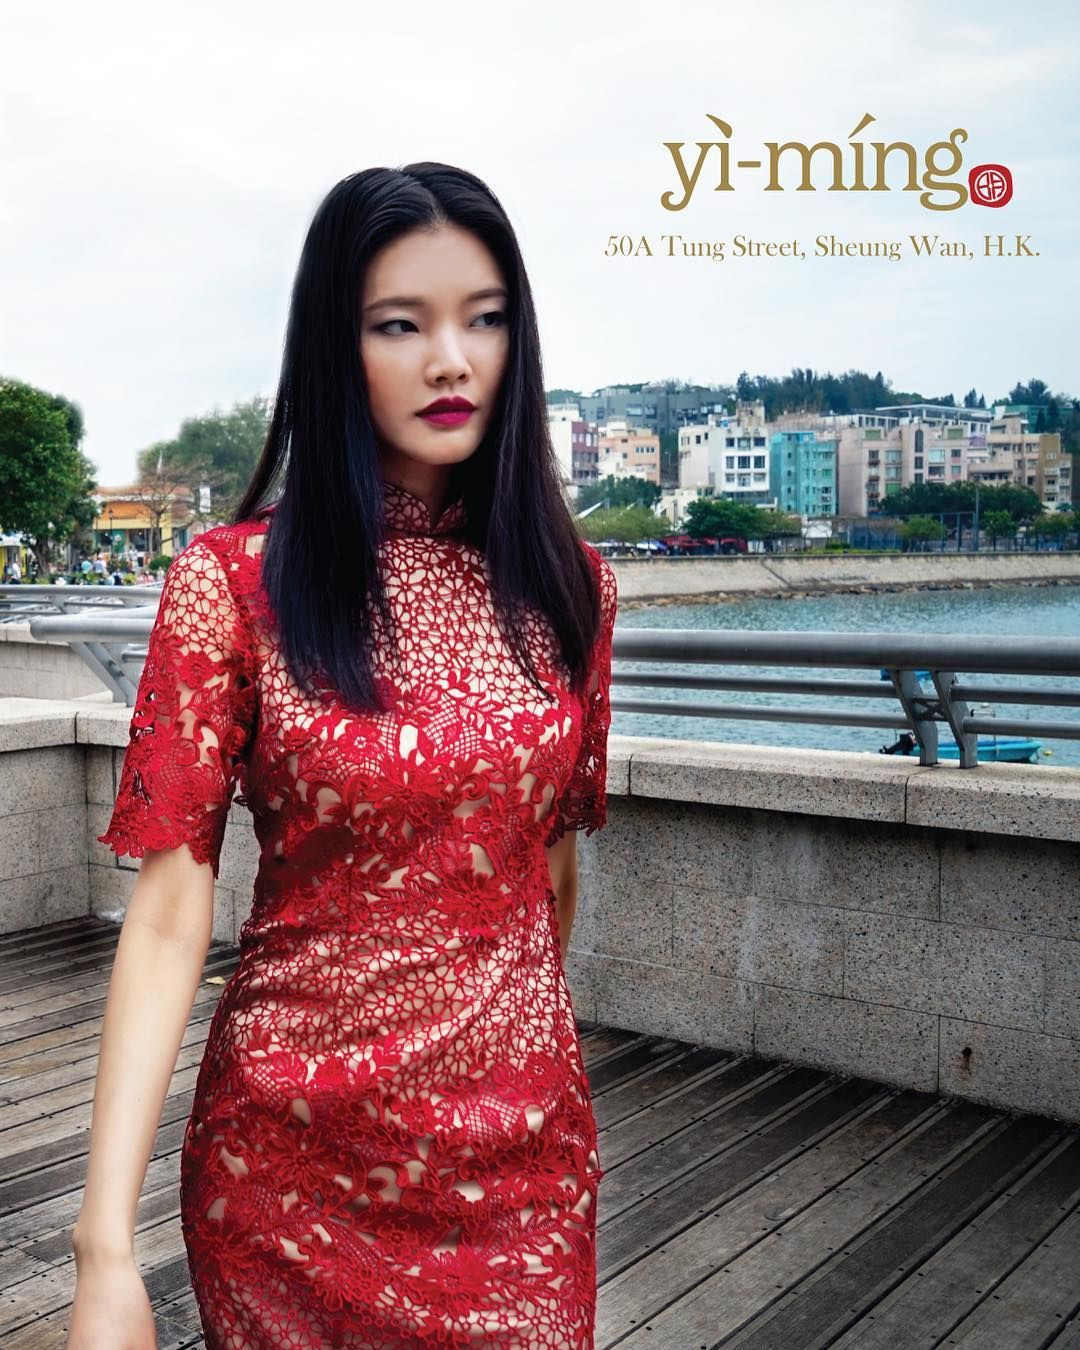 "Yi-ming New Collection ""Heritage Voyage"" is officially launched. We are glad to have the international well-known model ""CHEN LIN"" to be our Campaign girl!! Our new collections are now available at Jordan Yue Hwa department store and our new store at 50A Tung Street, Sheung Wan, HK . Photographer: @tseweivisualartist  Model: @chenlin0704 @primomodel . #yiming #yimingoriental #moderncheongsam #qipao #modernqipao #cheongsam #heritagevoyage #2017 #explorehongkong #yimingqipao #fashionoriental…"